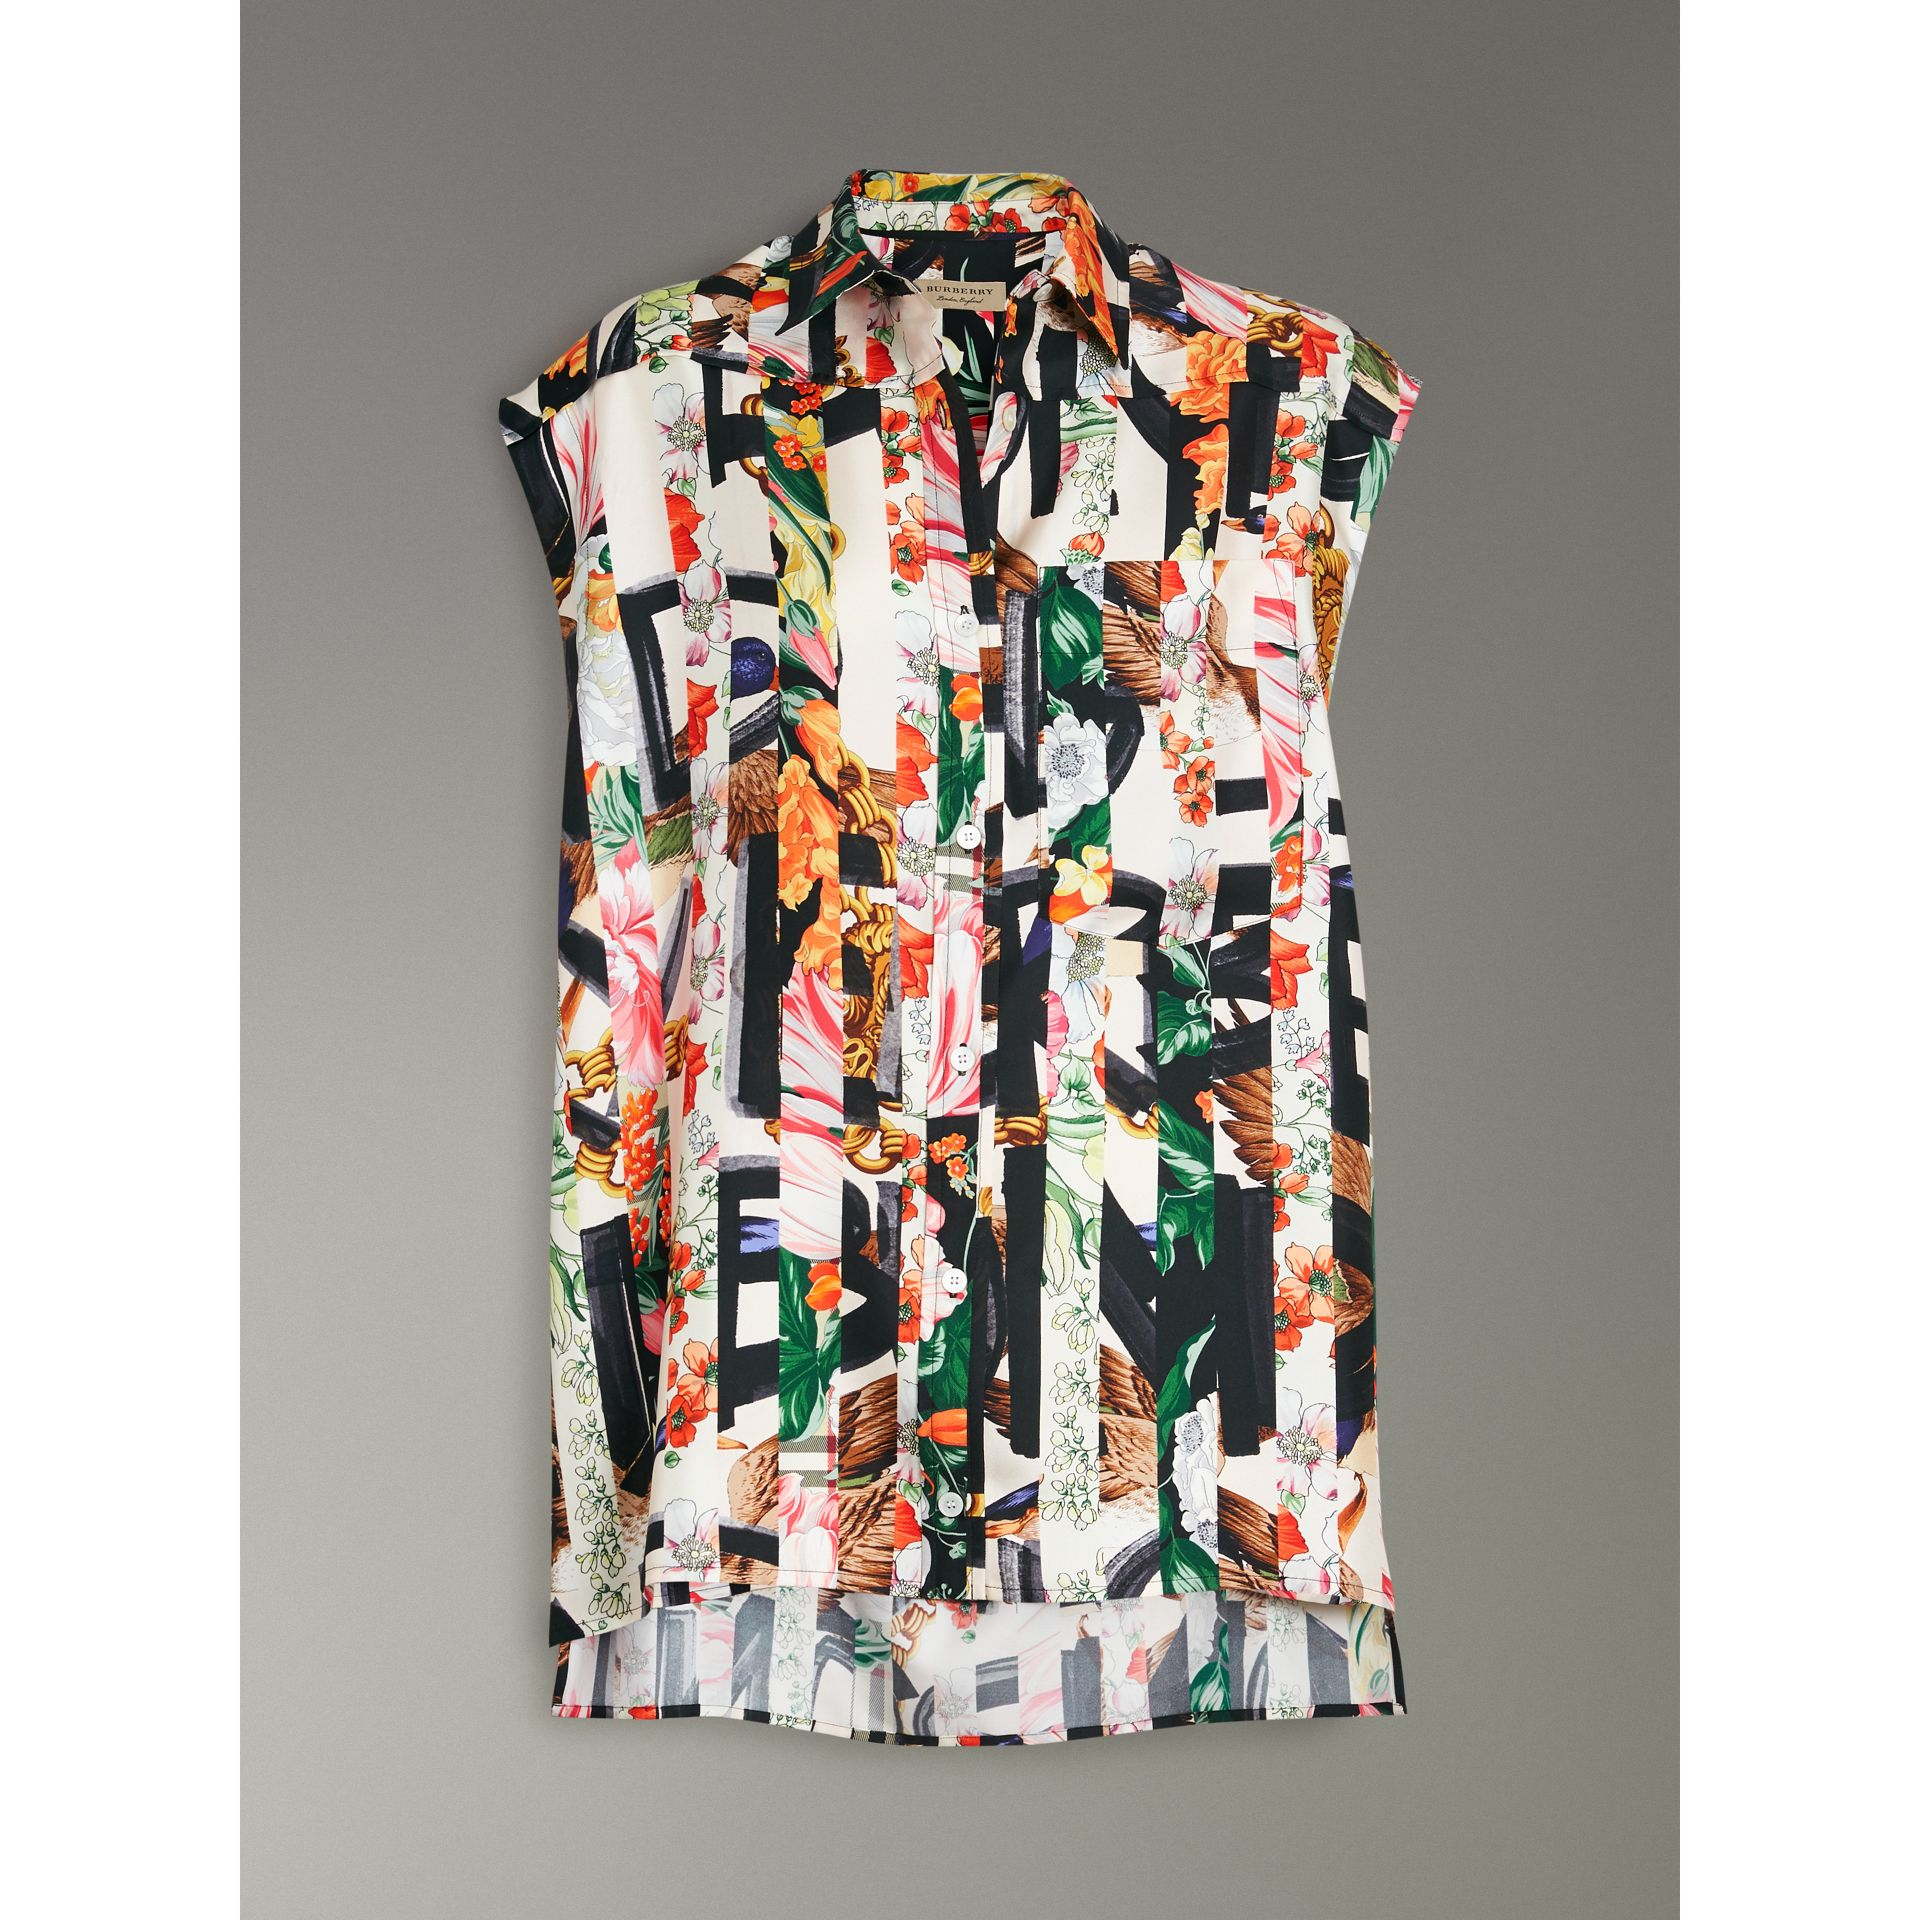 Archive Scarf Print Silk Sleeveless Shirt in Multicolour - Women | Burberry - gallery image 3